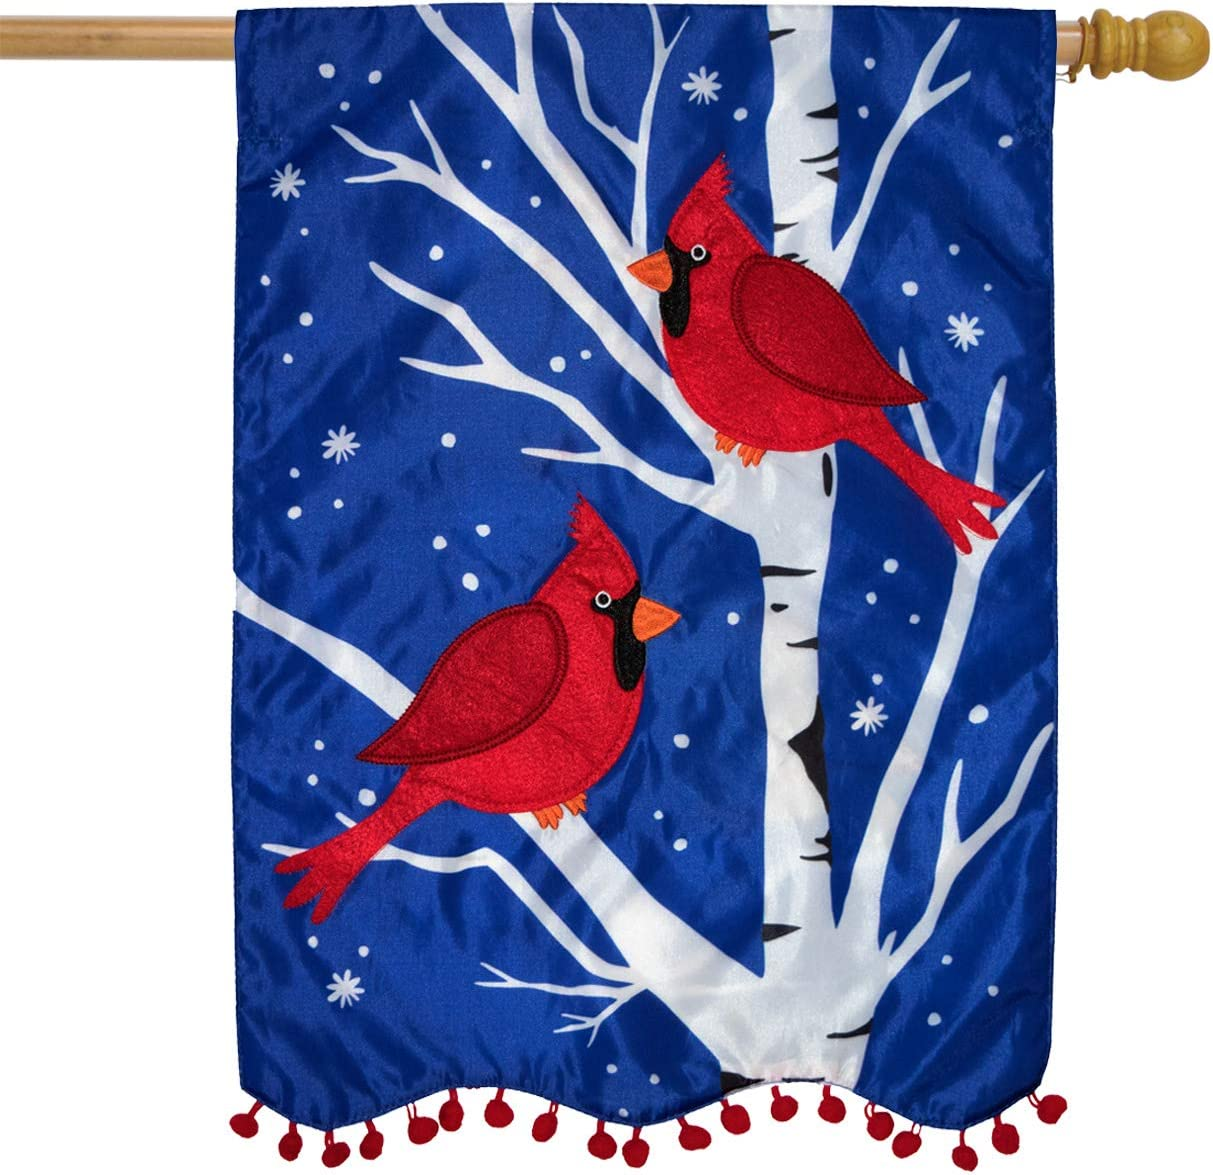 Briarwood Lane Winter Cardinals Applique House Flag Double Sided 28 X 40 Garden Outdoor